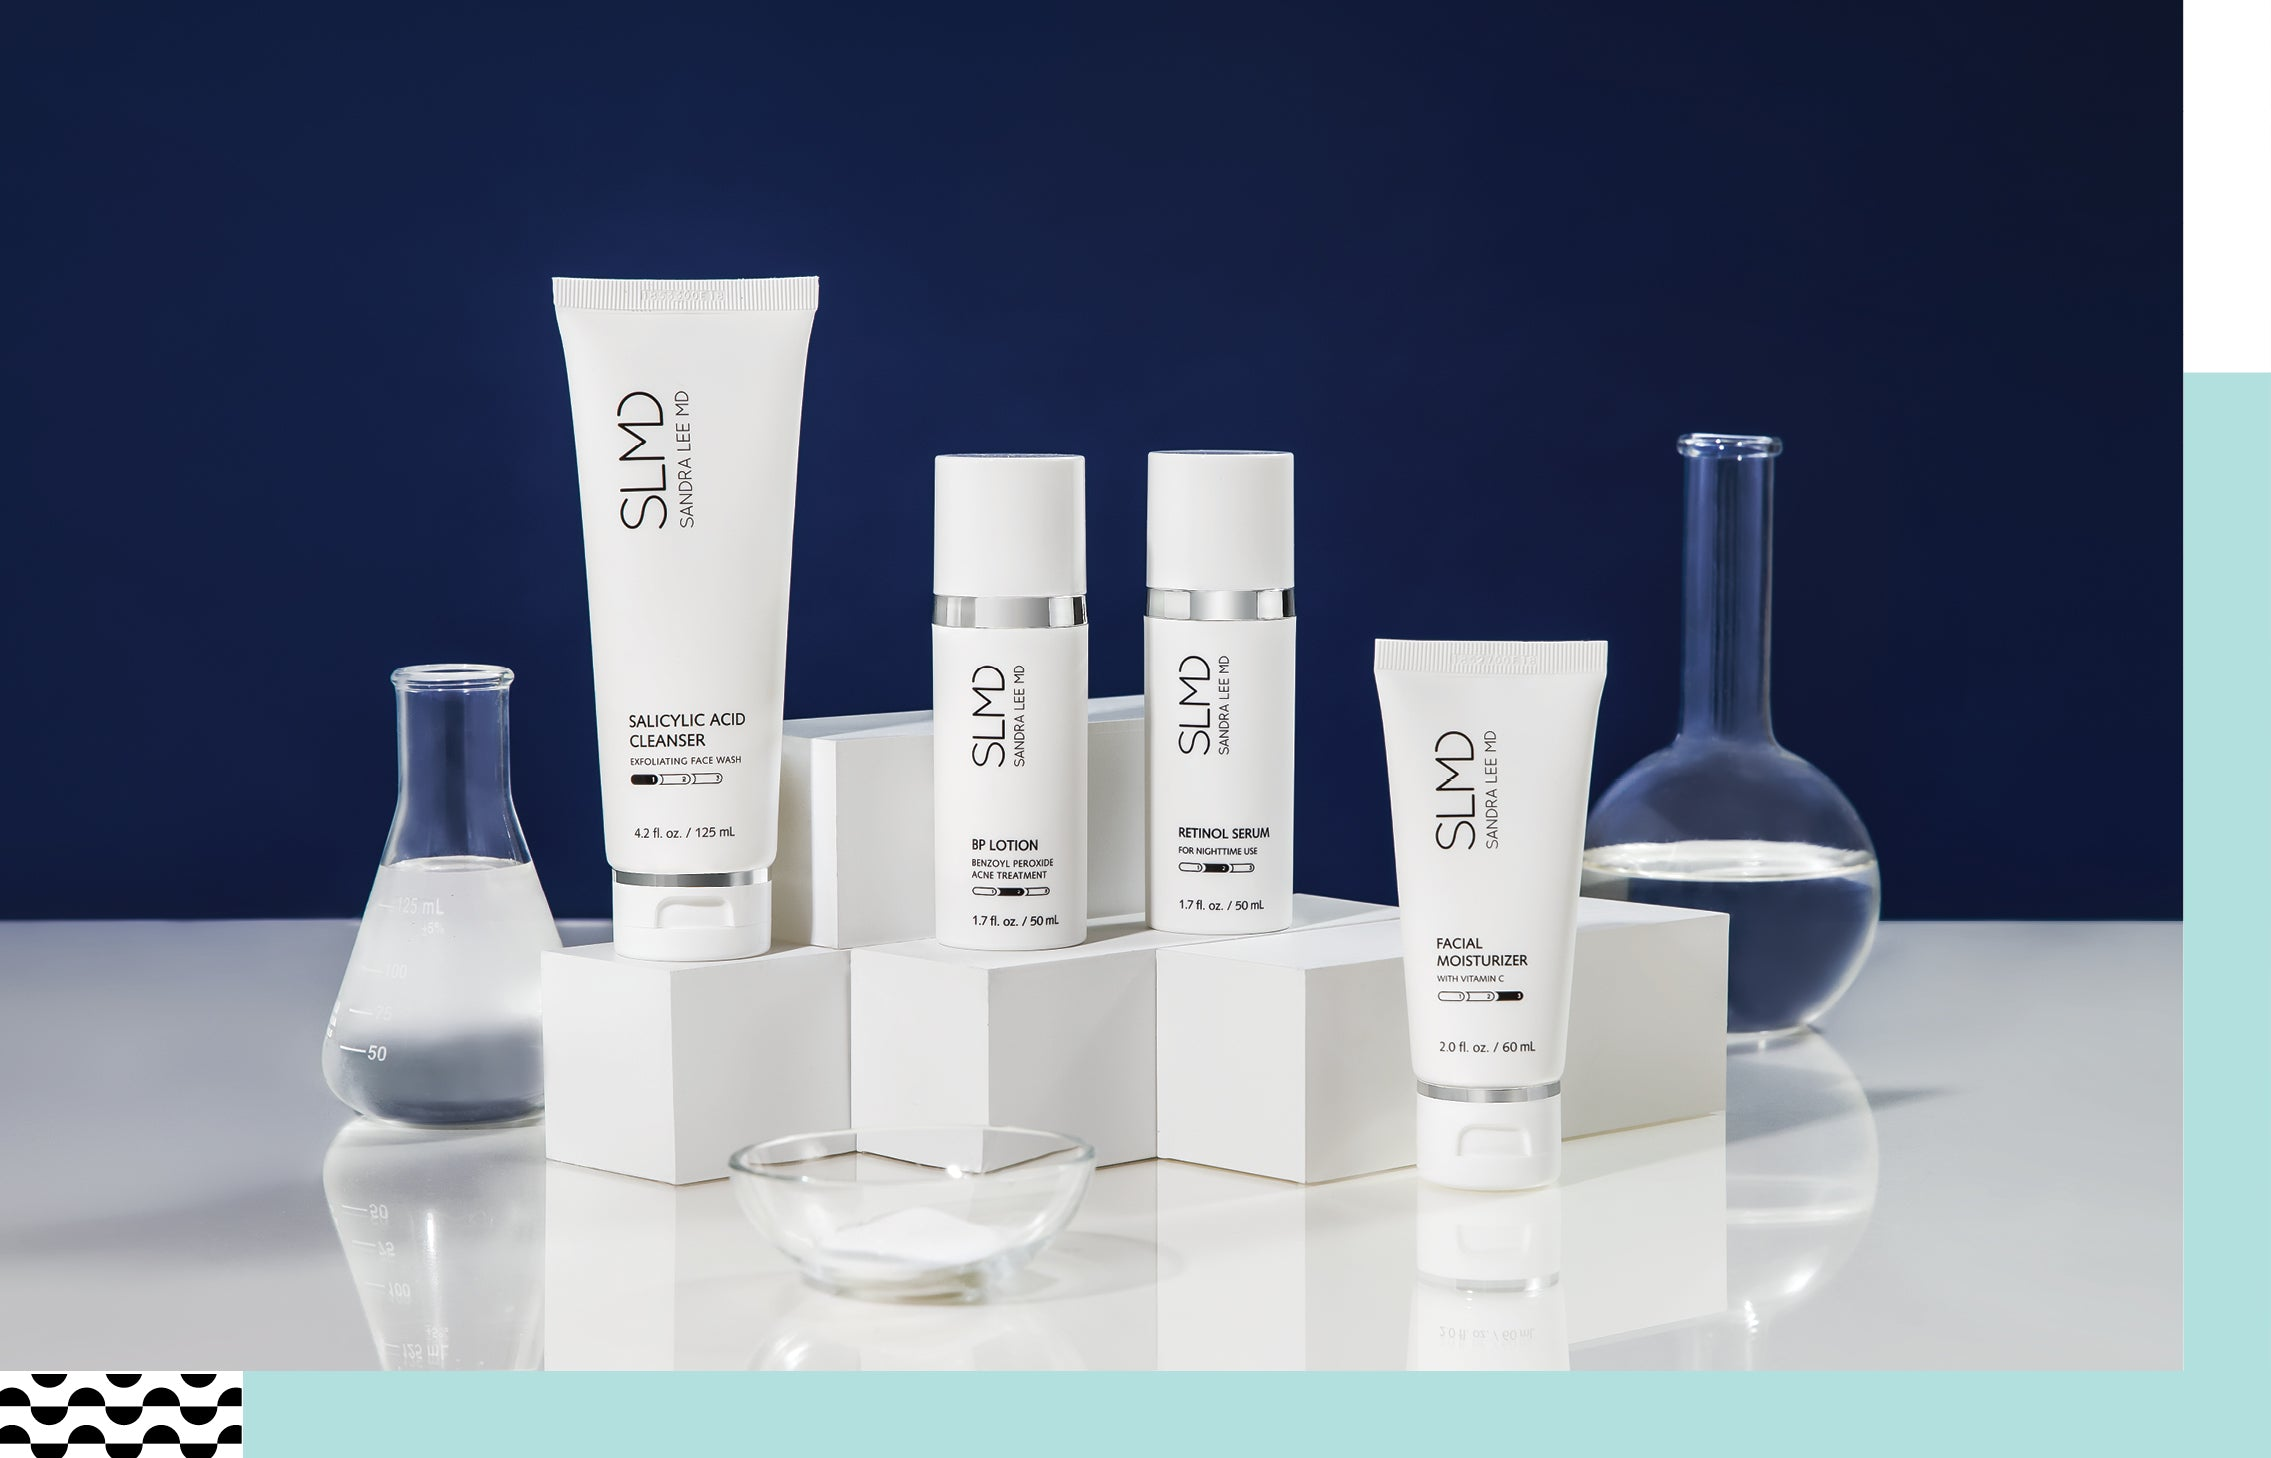 SLMD Skincare: Our #1 best seller